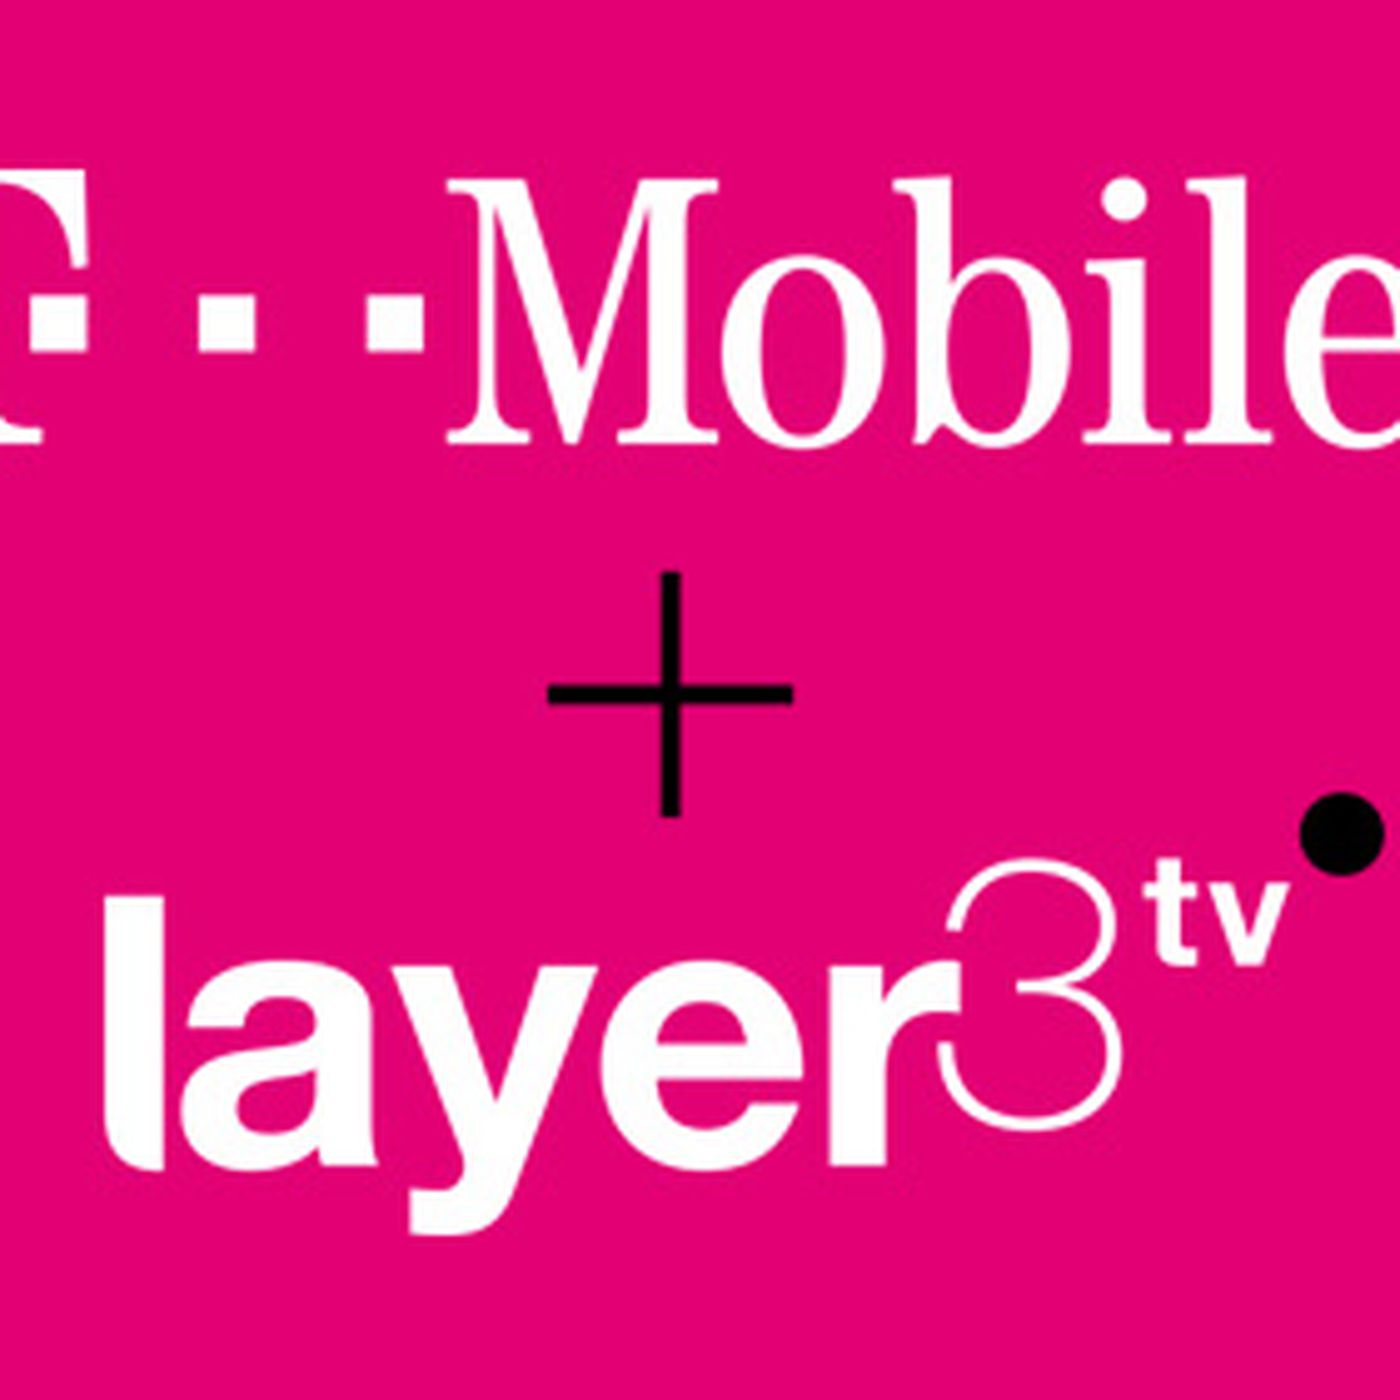 What Is Layer3 Tv And Why T Mobile Buying It The Verge Optical Fiber Cable Google Patents On Wiring Home With Optic